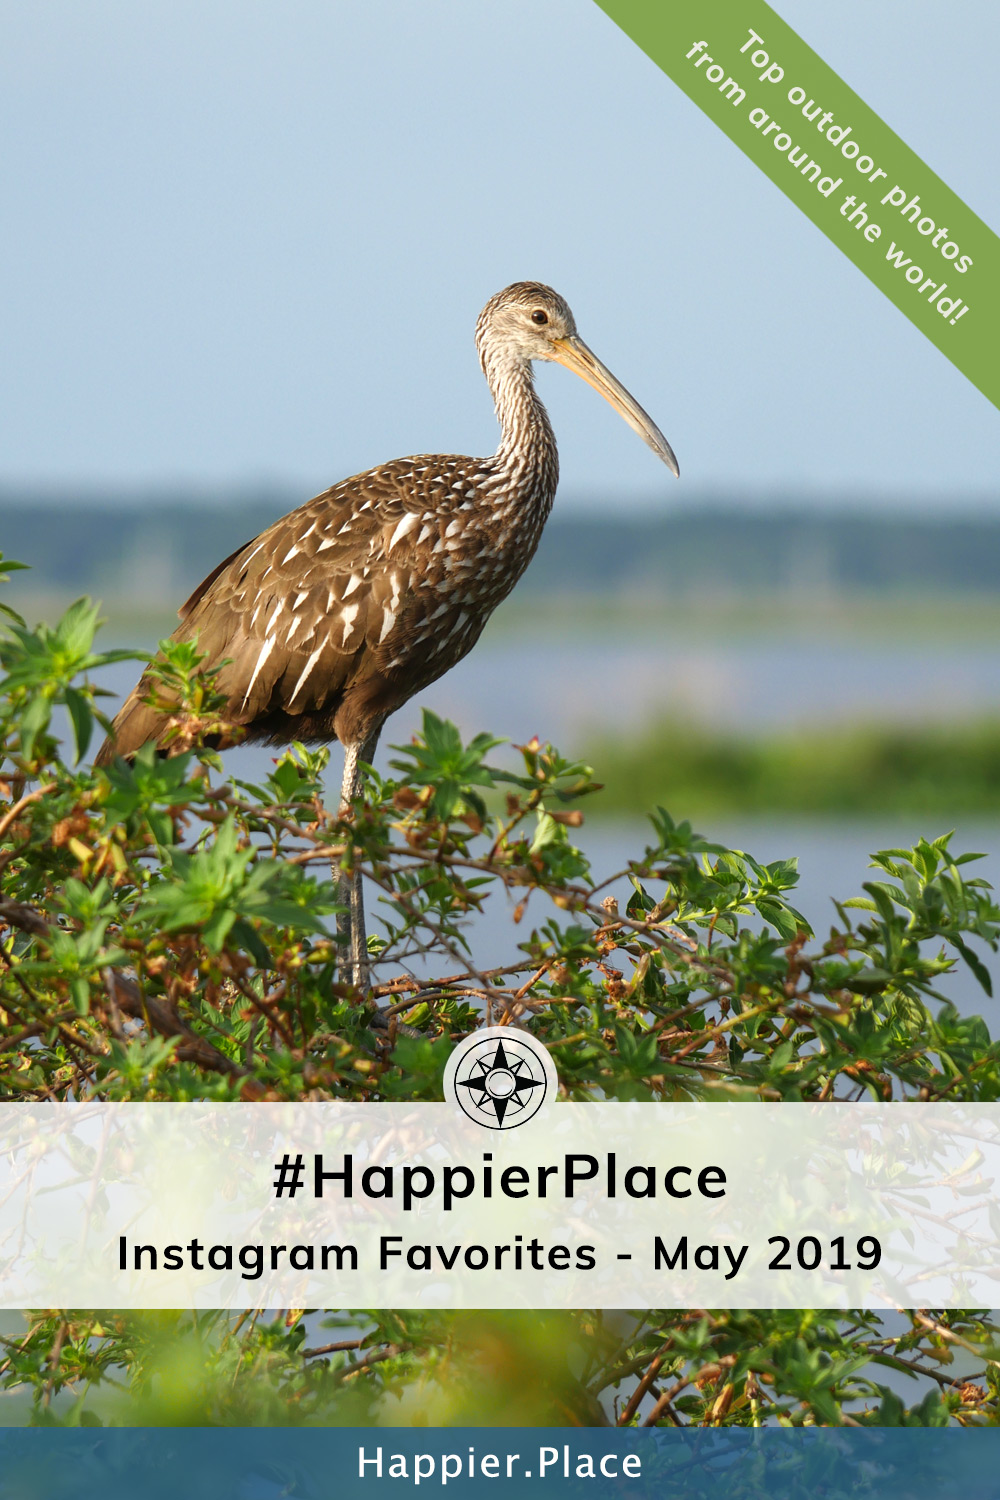 Limpkin in Florida representing  #HappierPlace Instagram Favorite Photos for May 2019  #Instagram #naturephotography #nature #outdoors